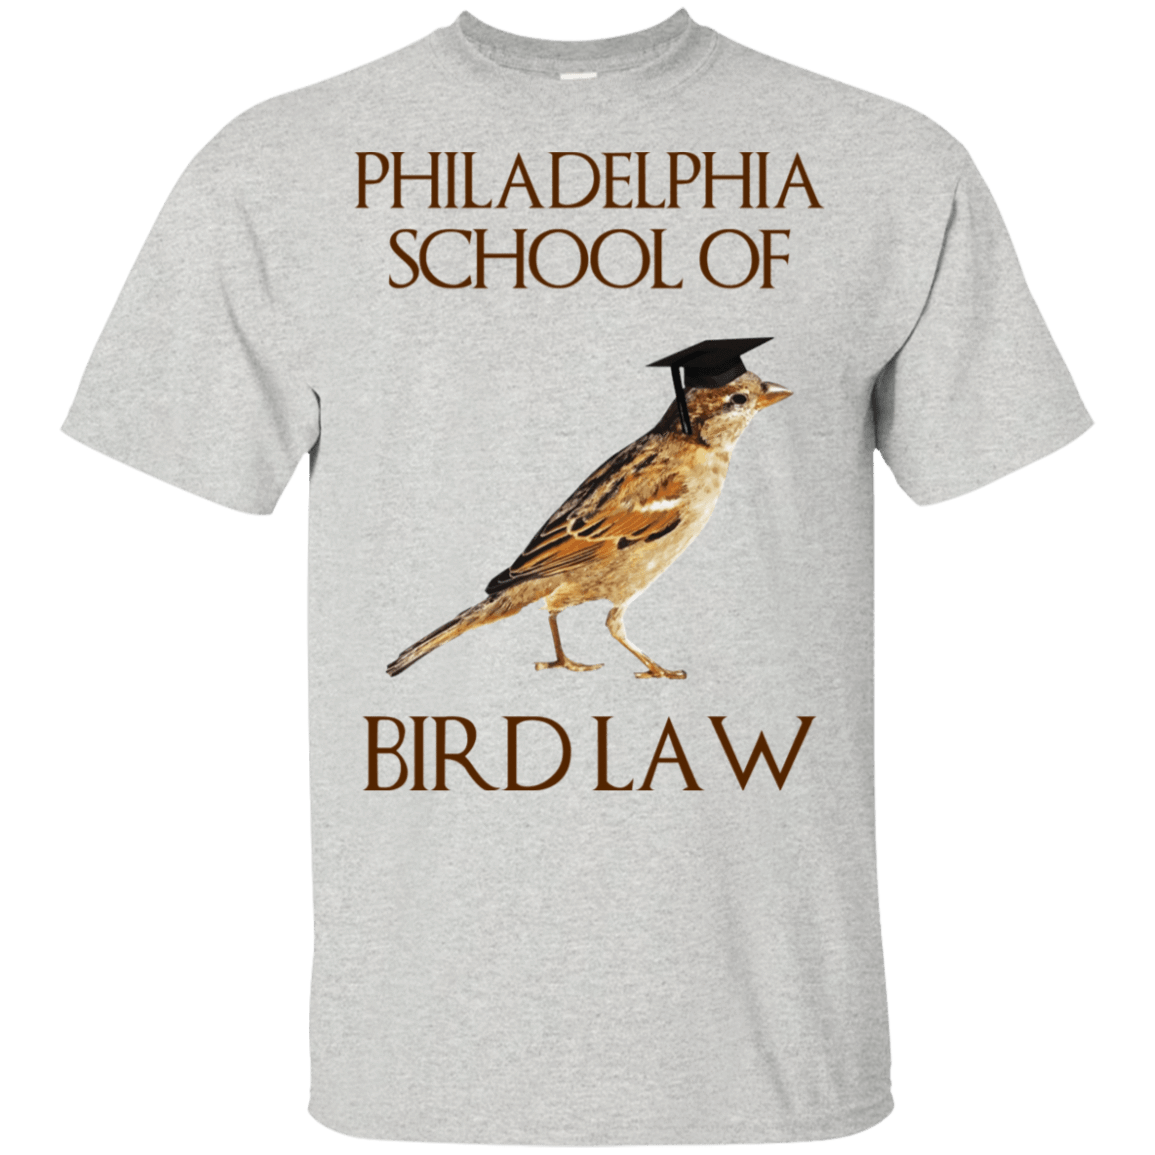 Philadelphia School of Bird Law 22-2475-73057593-12568 - Tee Ript